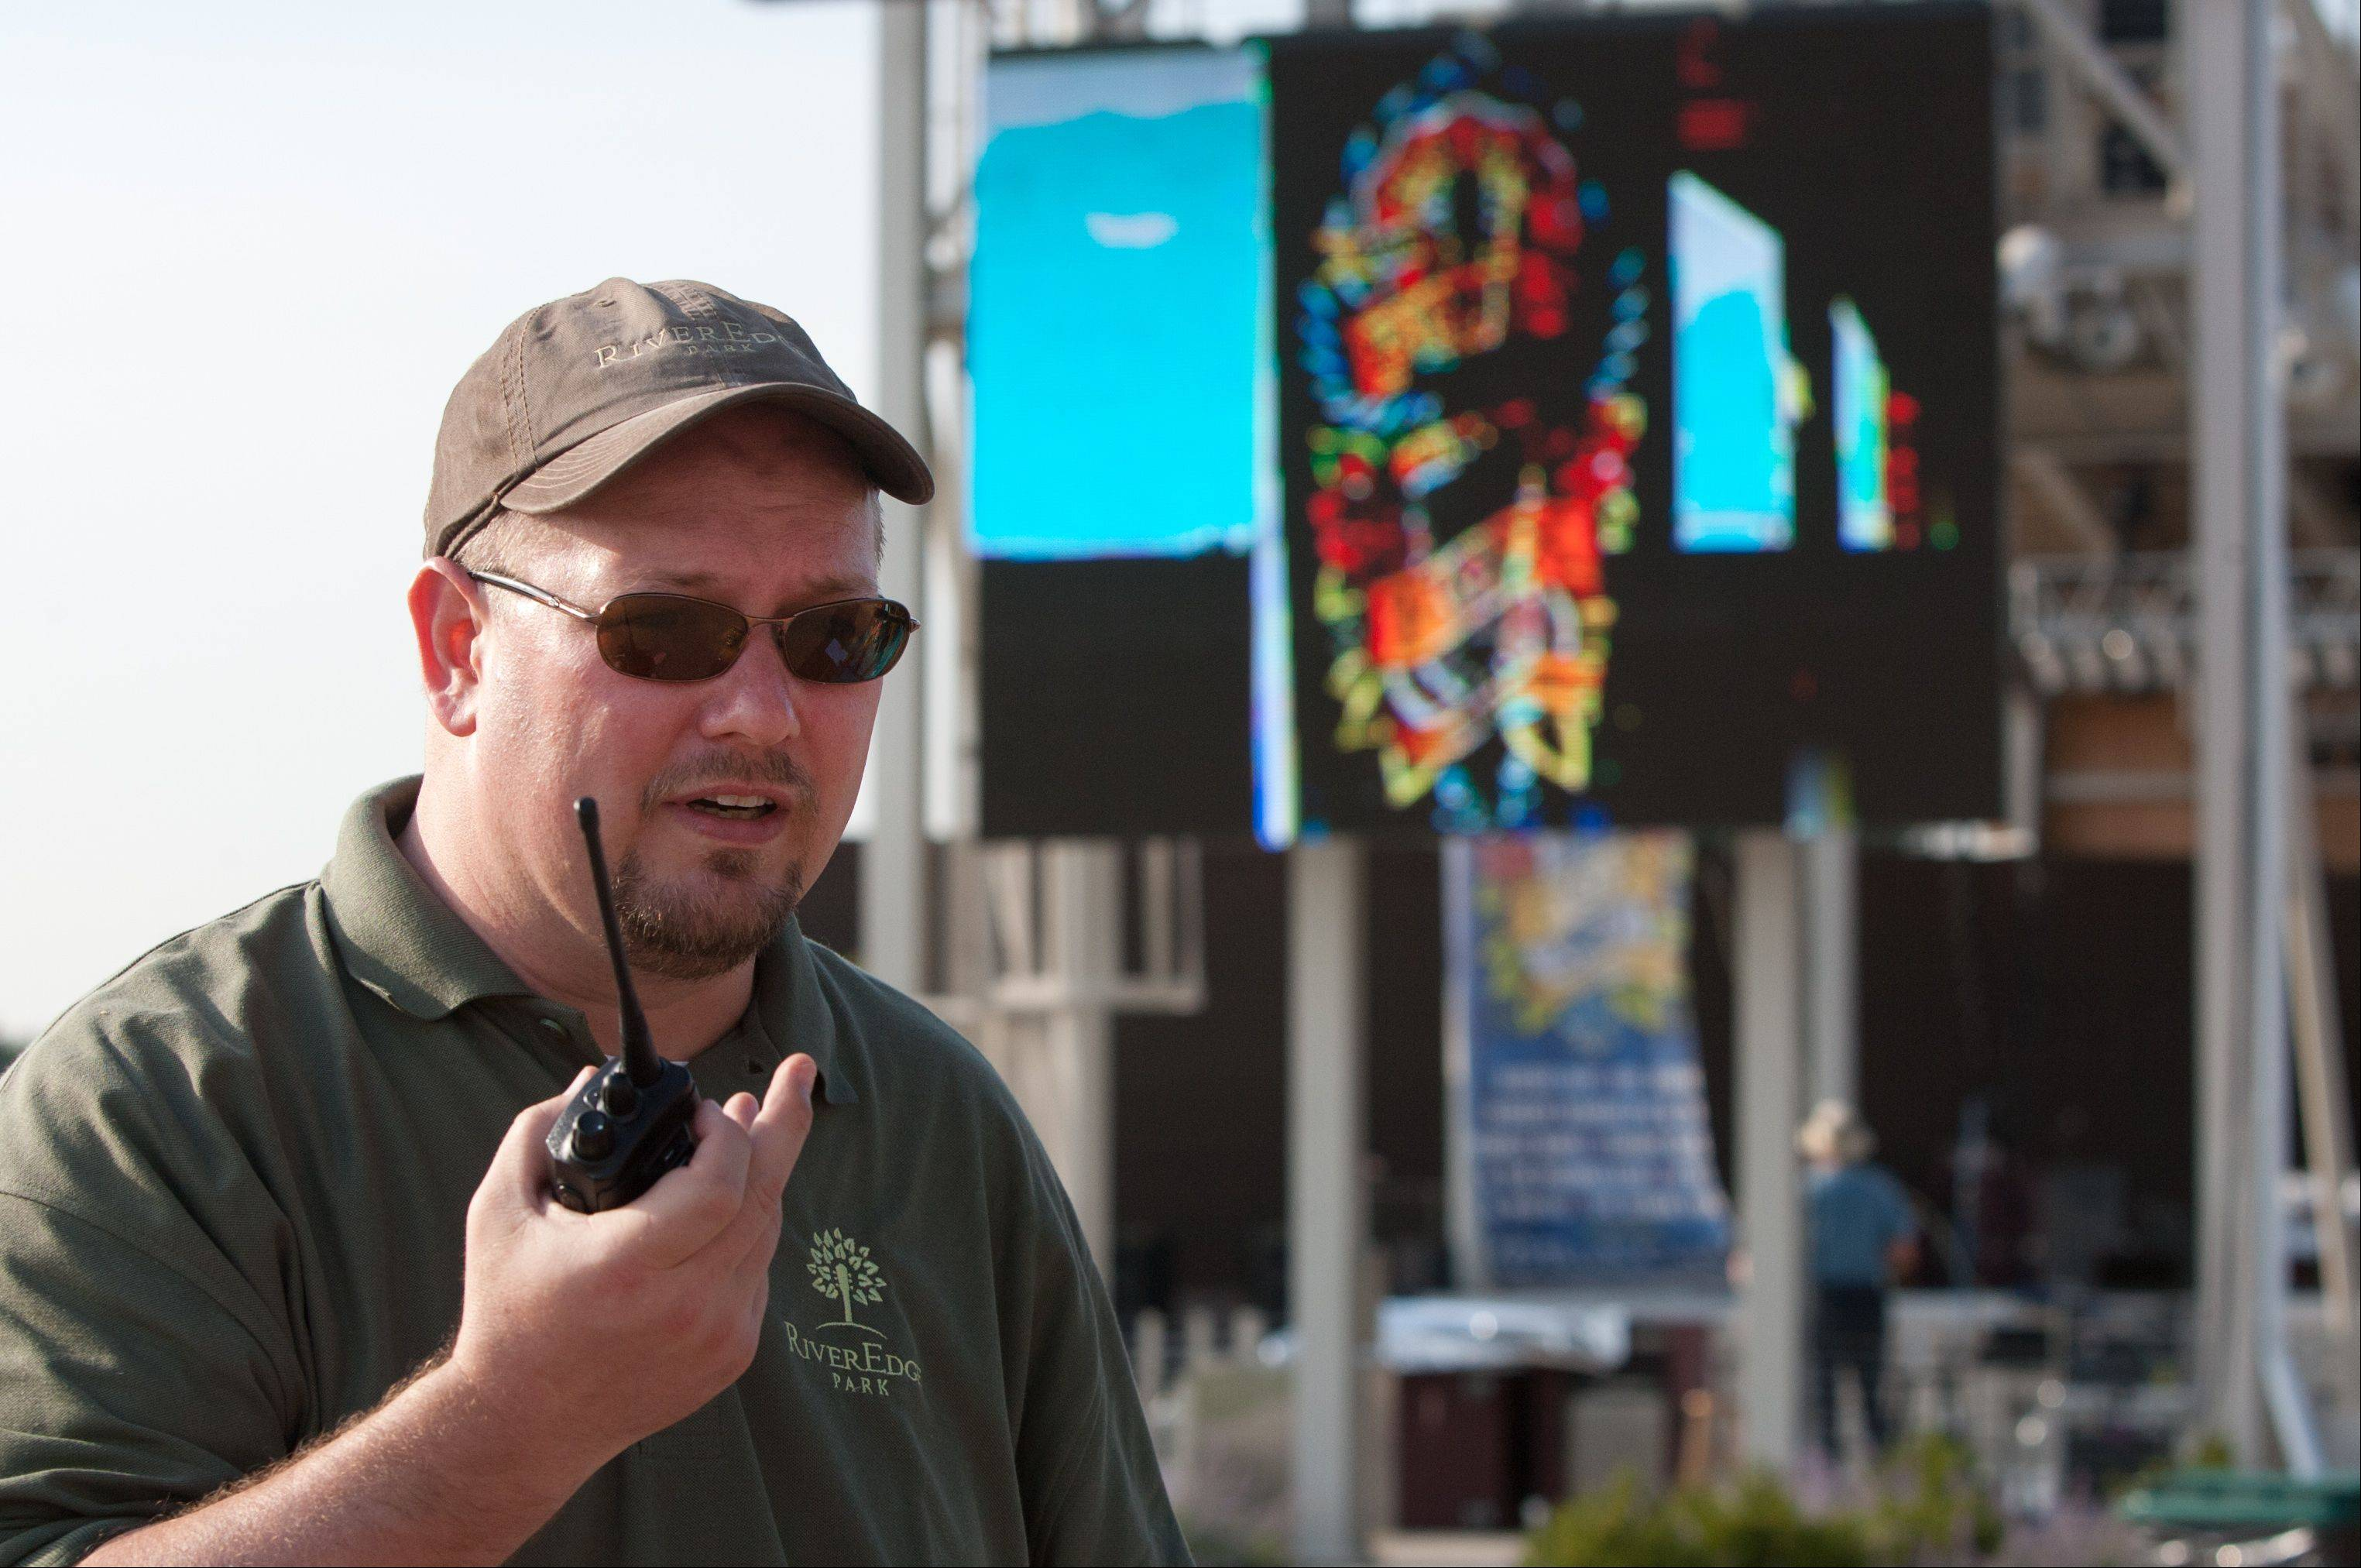 Tim Rater, president and CEO of the Aurora Civic Center Authority, monitors the opening night of RiverEdge Park, coinciding with the 17th annual Blues on the Fox festival.